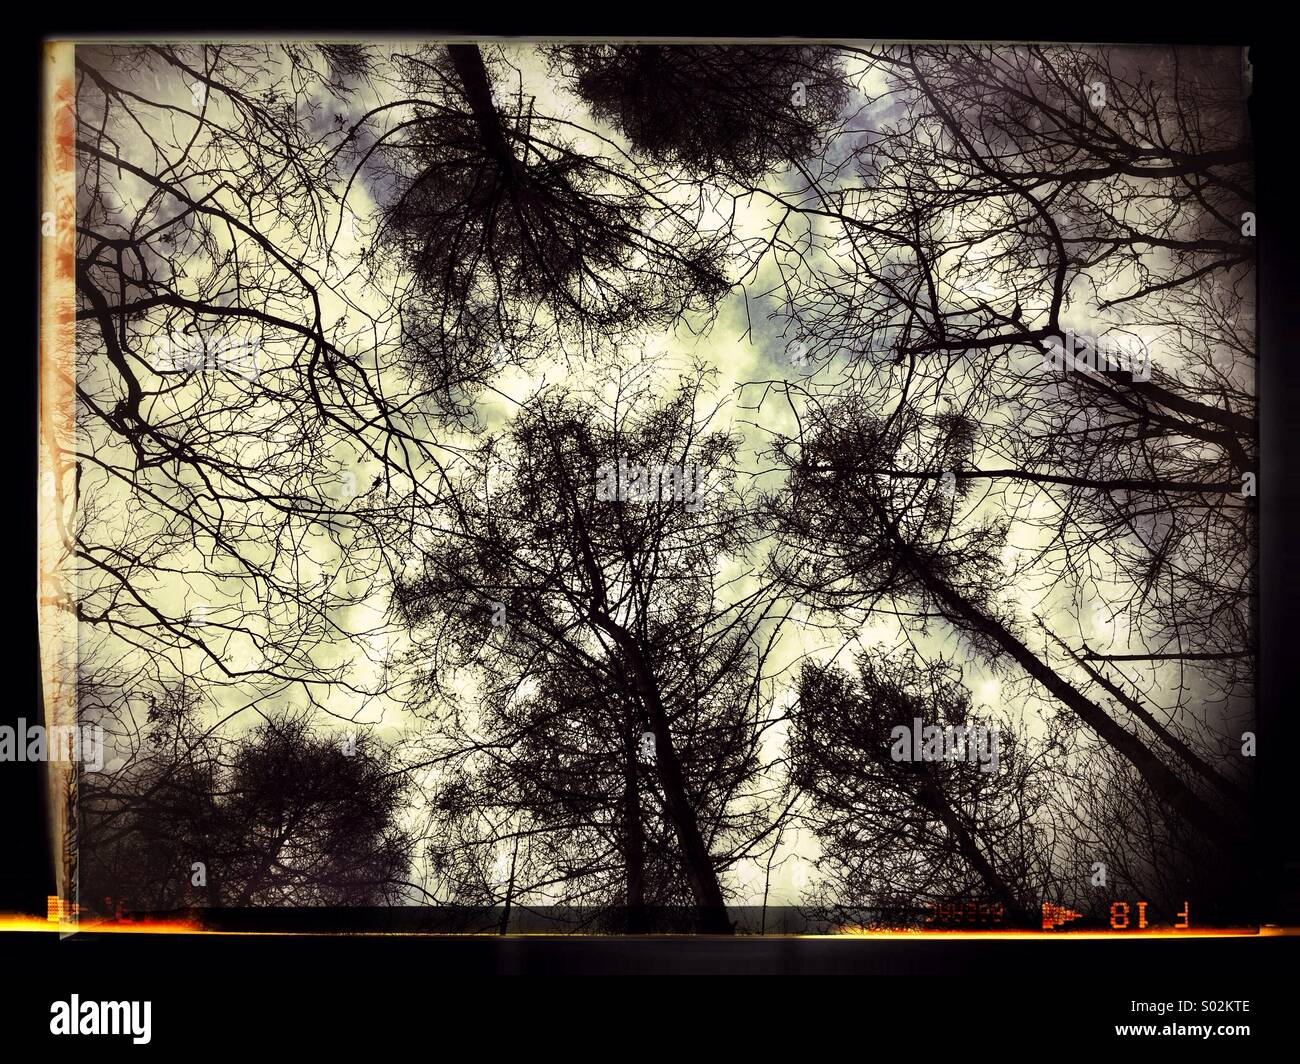 Trees in the wood - Stock Image